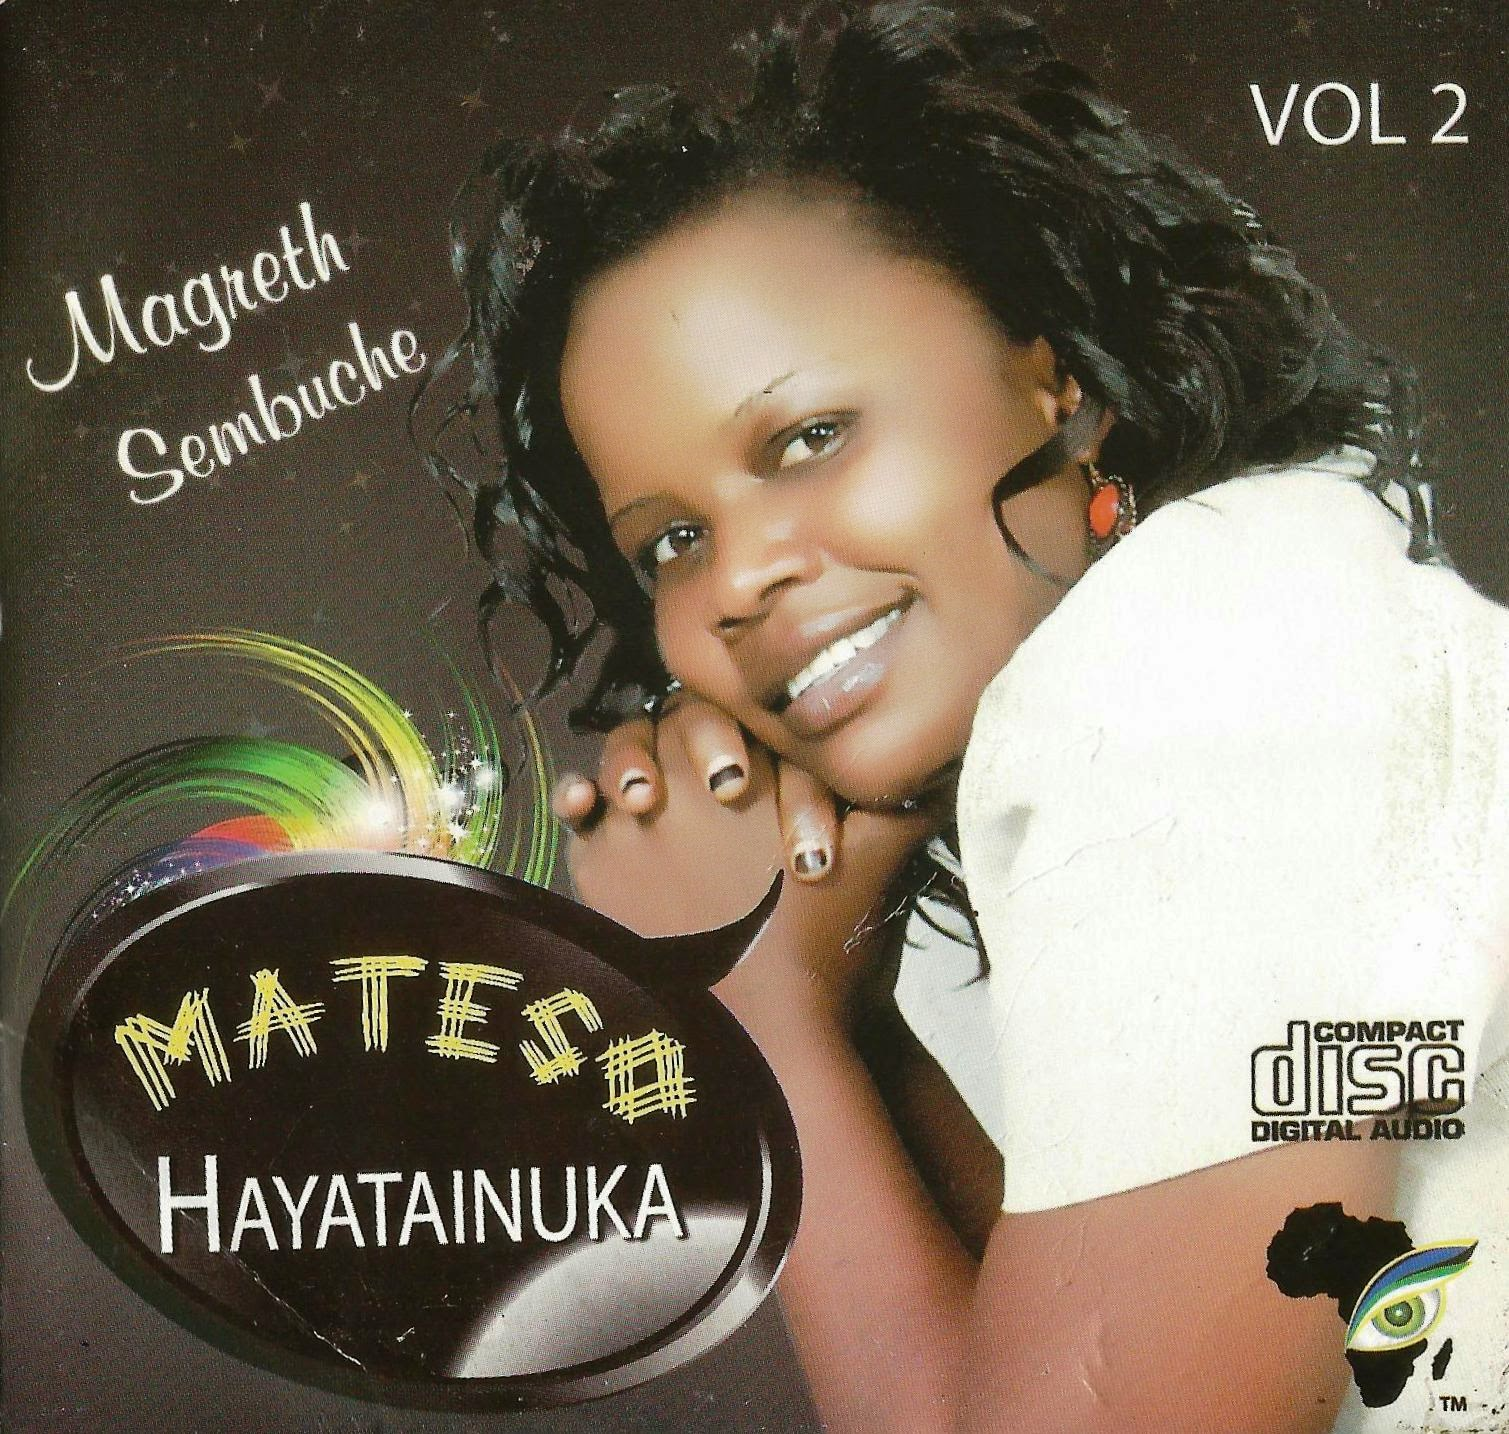 JIPATIE AUDIO CD MPYA YA MAGRETH SEMBUCHE 2014